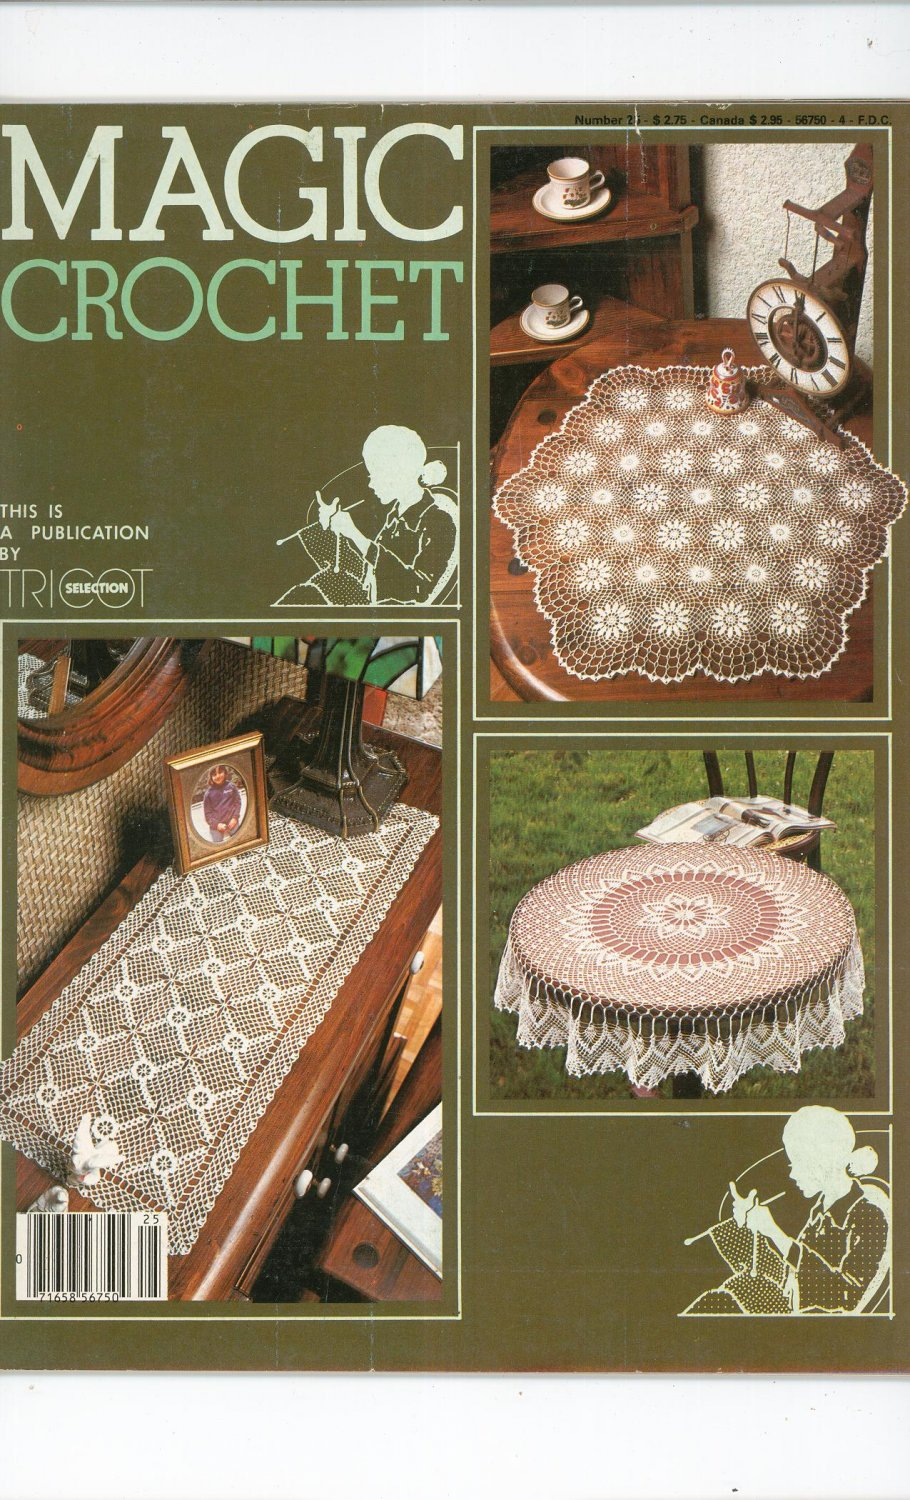 Magic Crochet Number 25 June 1983 Tricot Selection